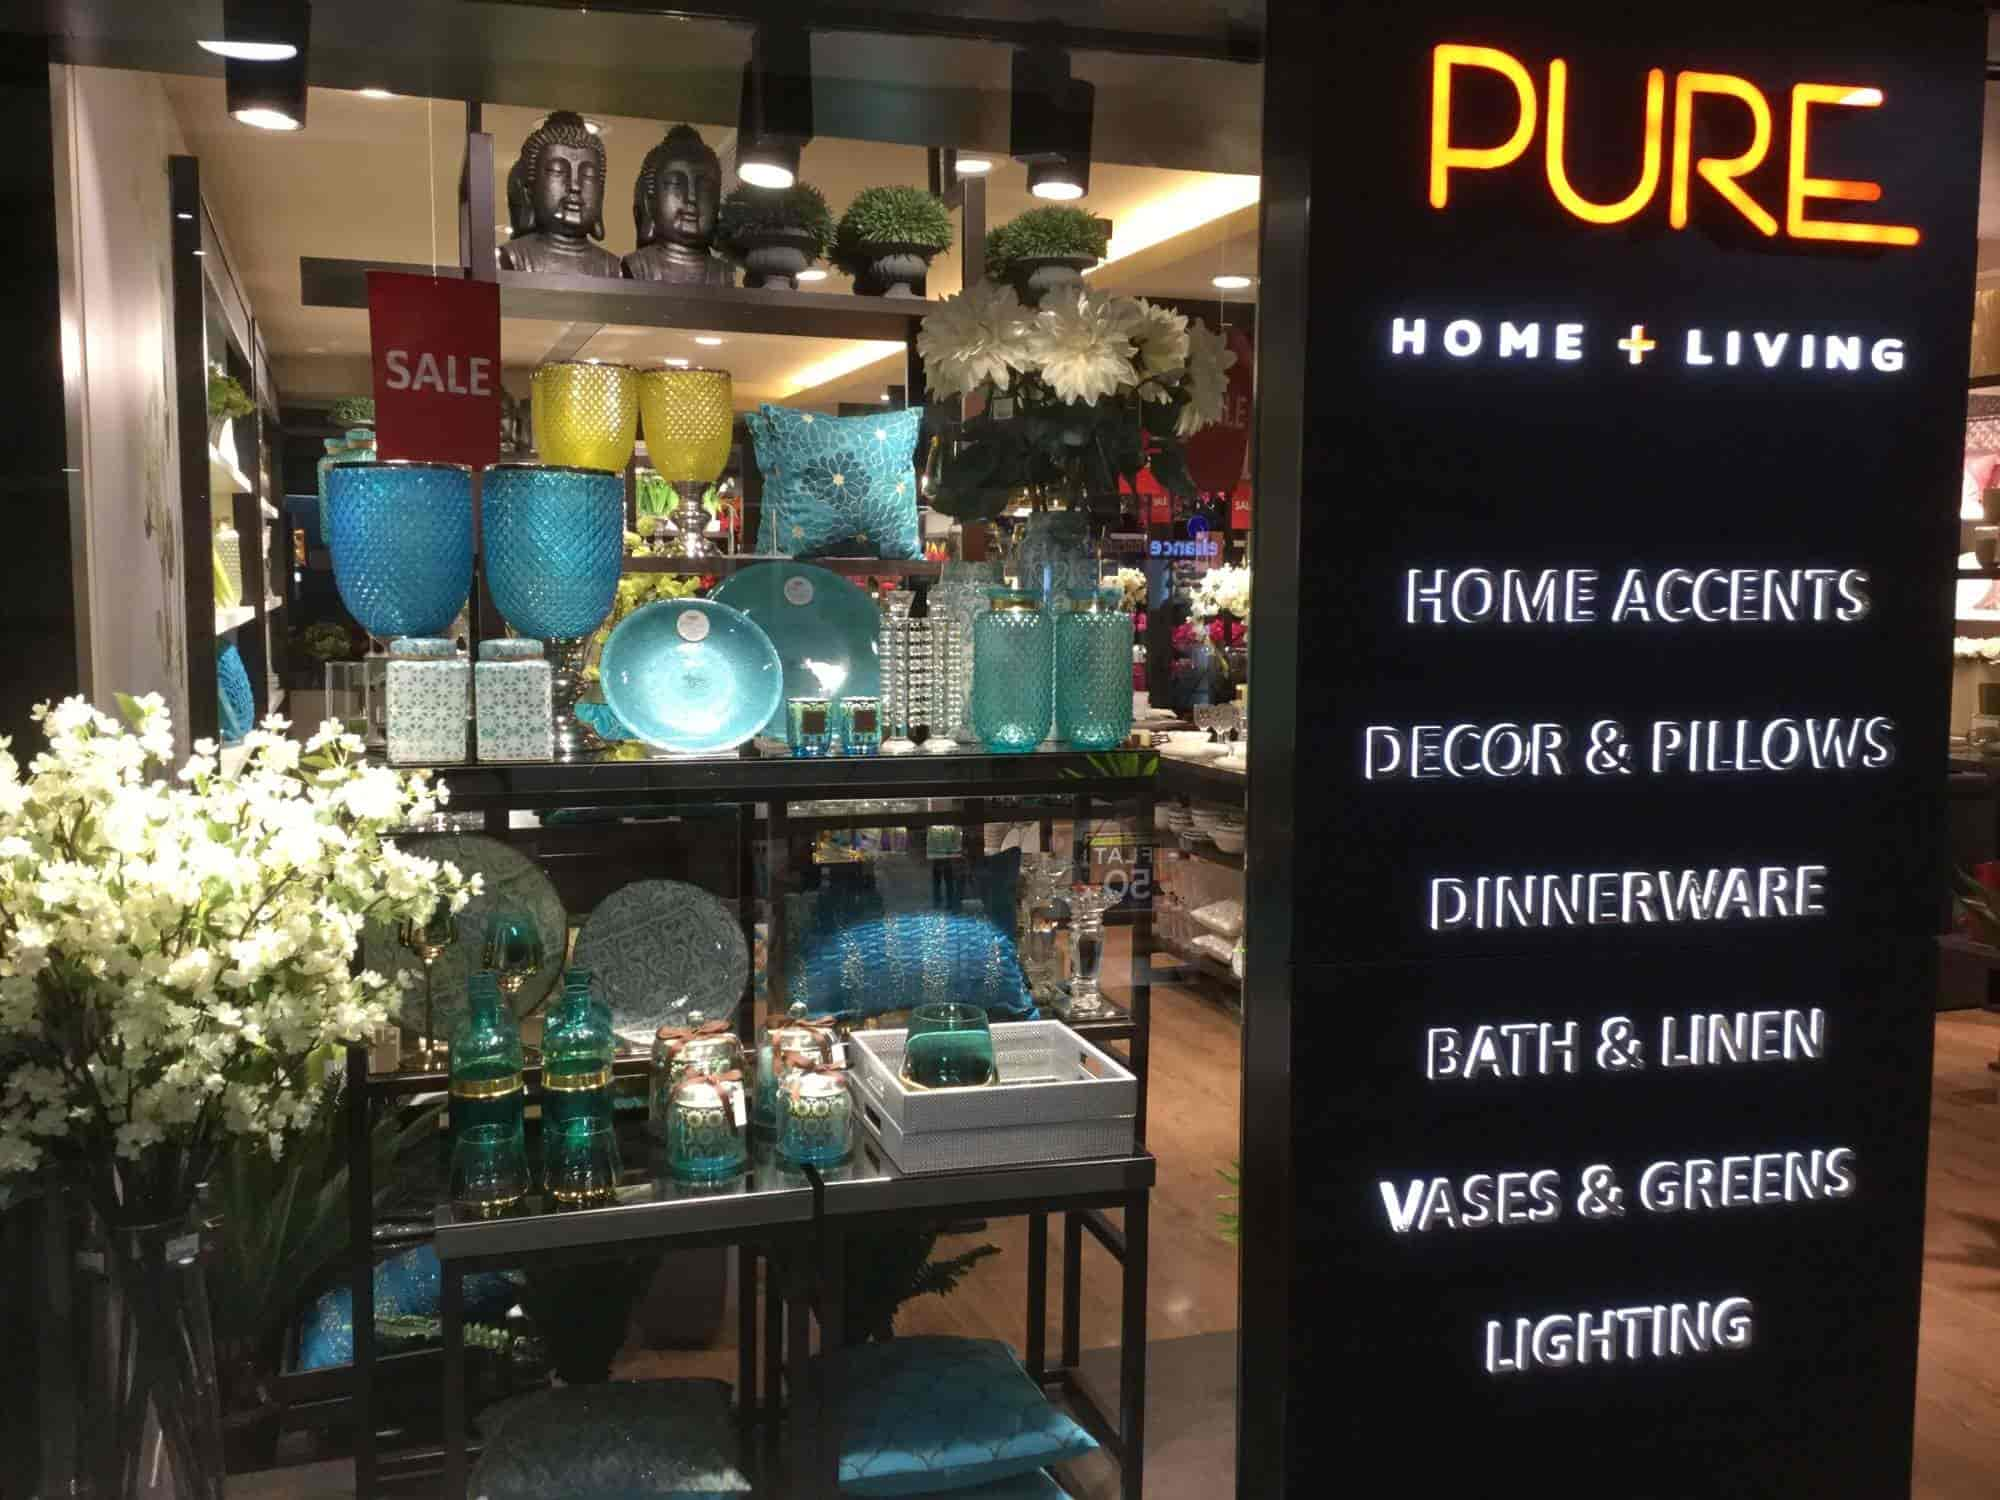 Pure Home Plus Living Mg Road Home Decorative Item Dealers In